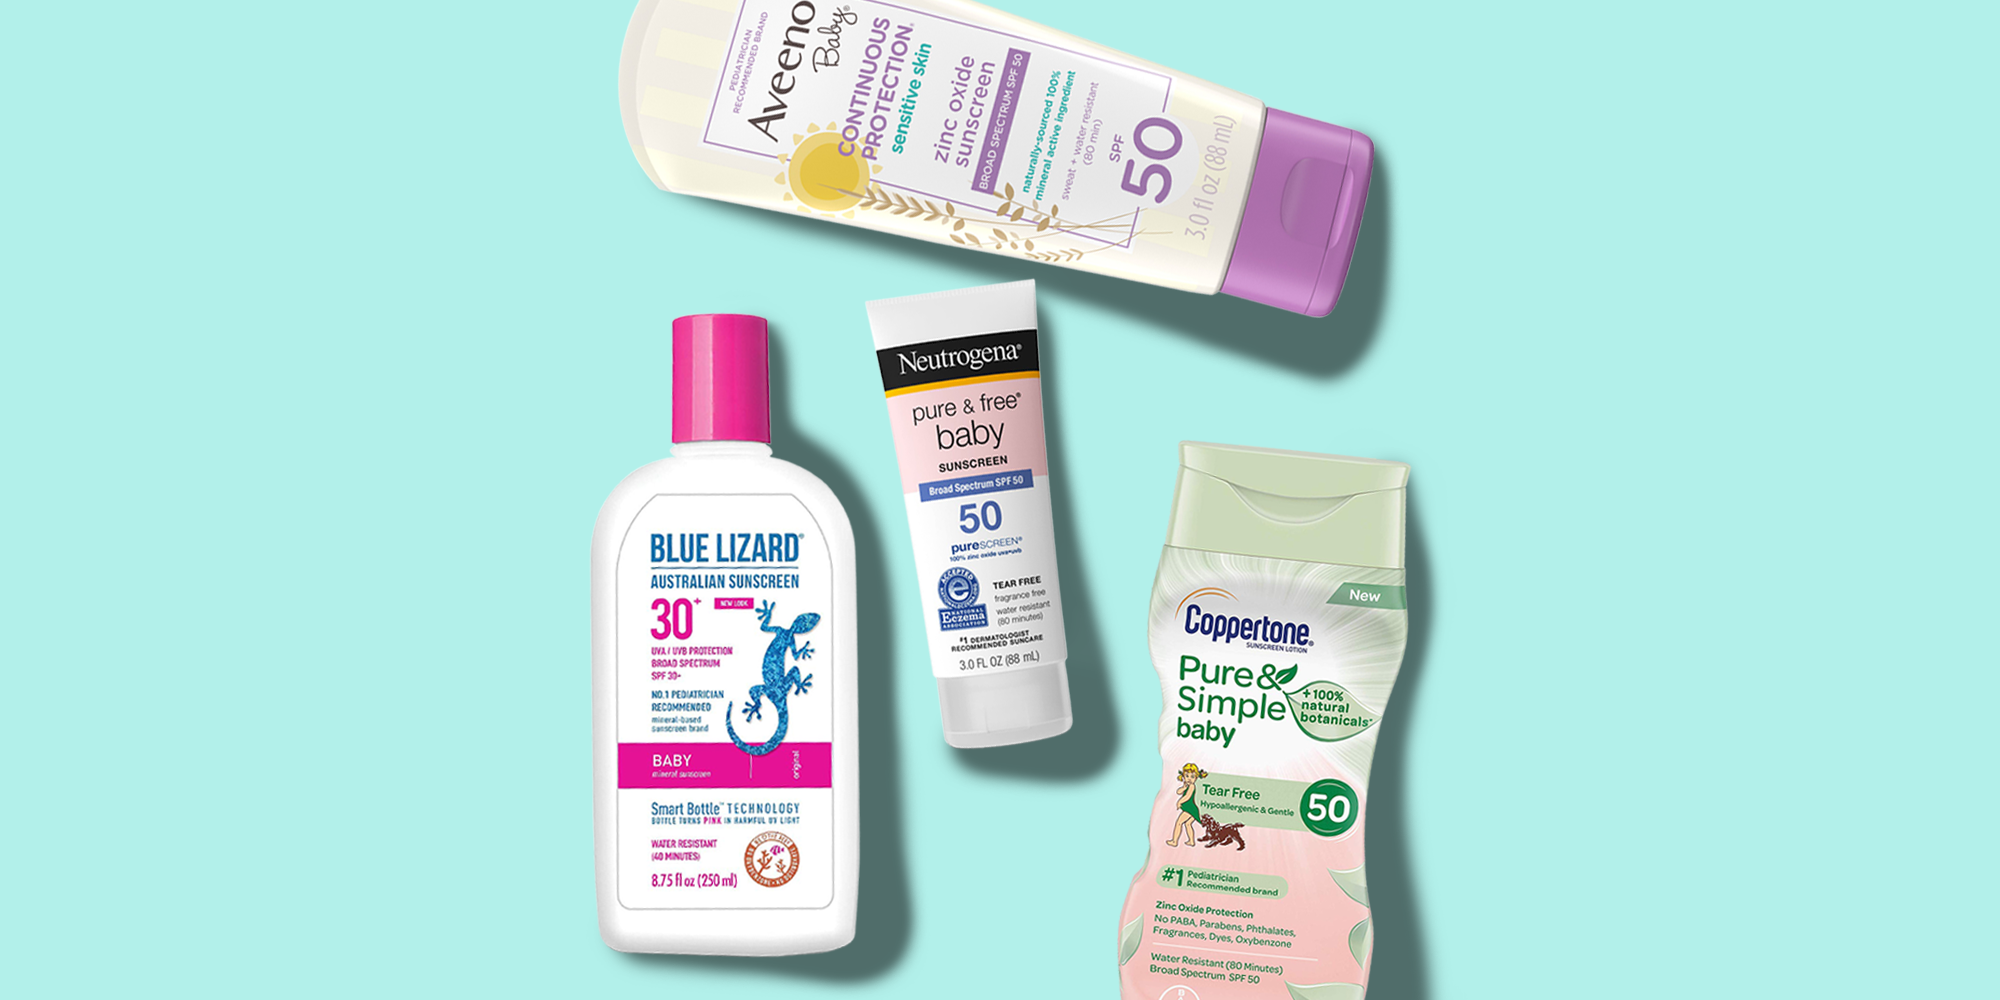 10 Best Sunscreens for Kids and Babies